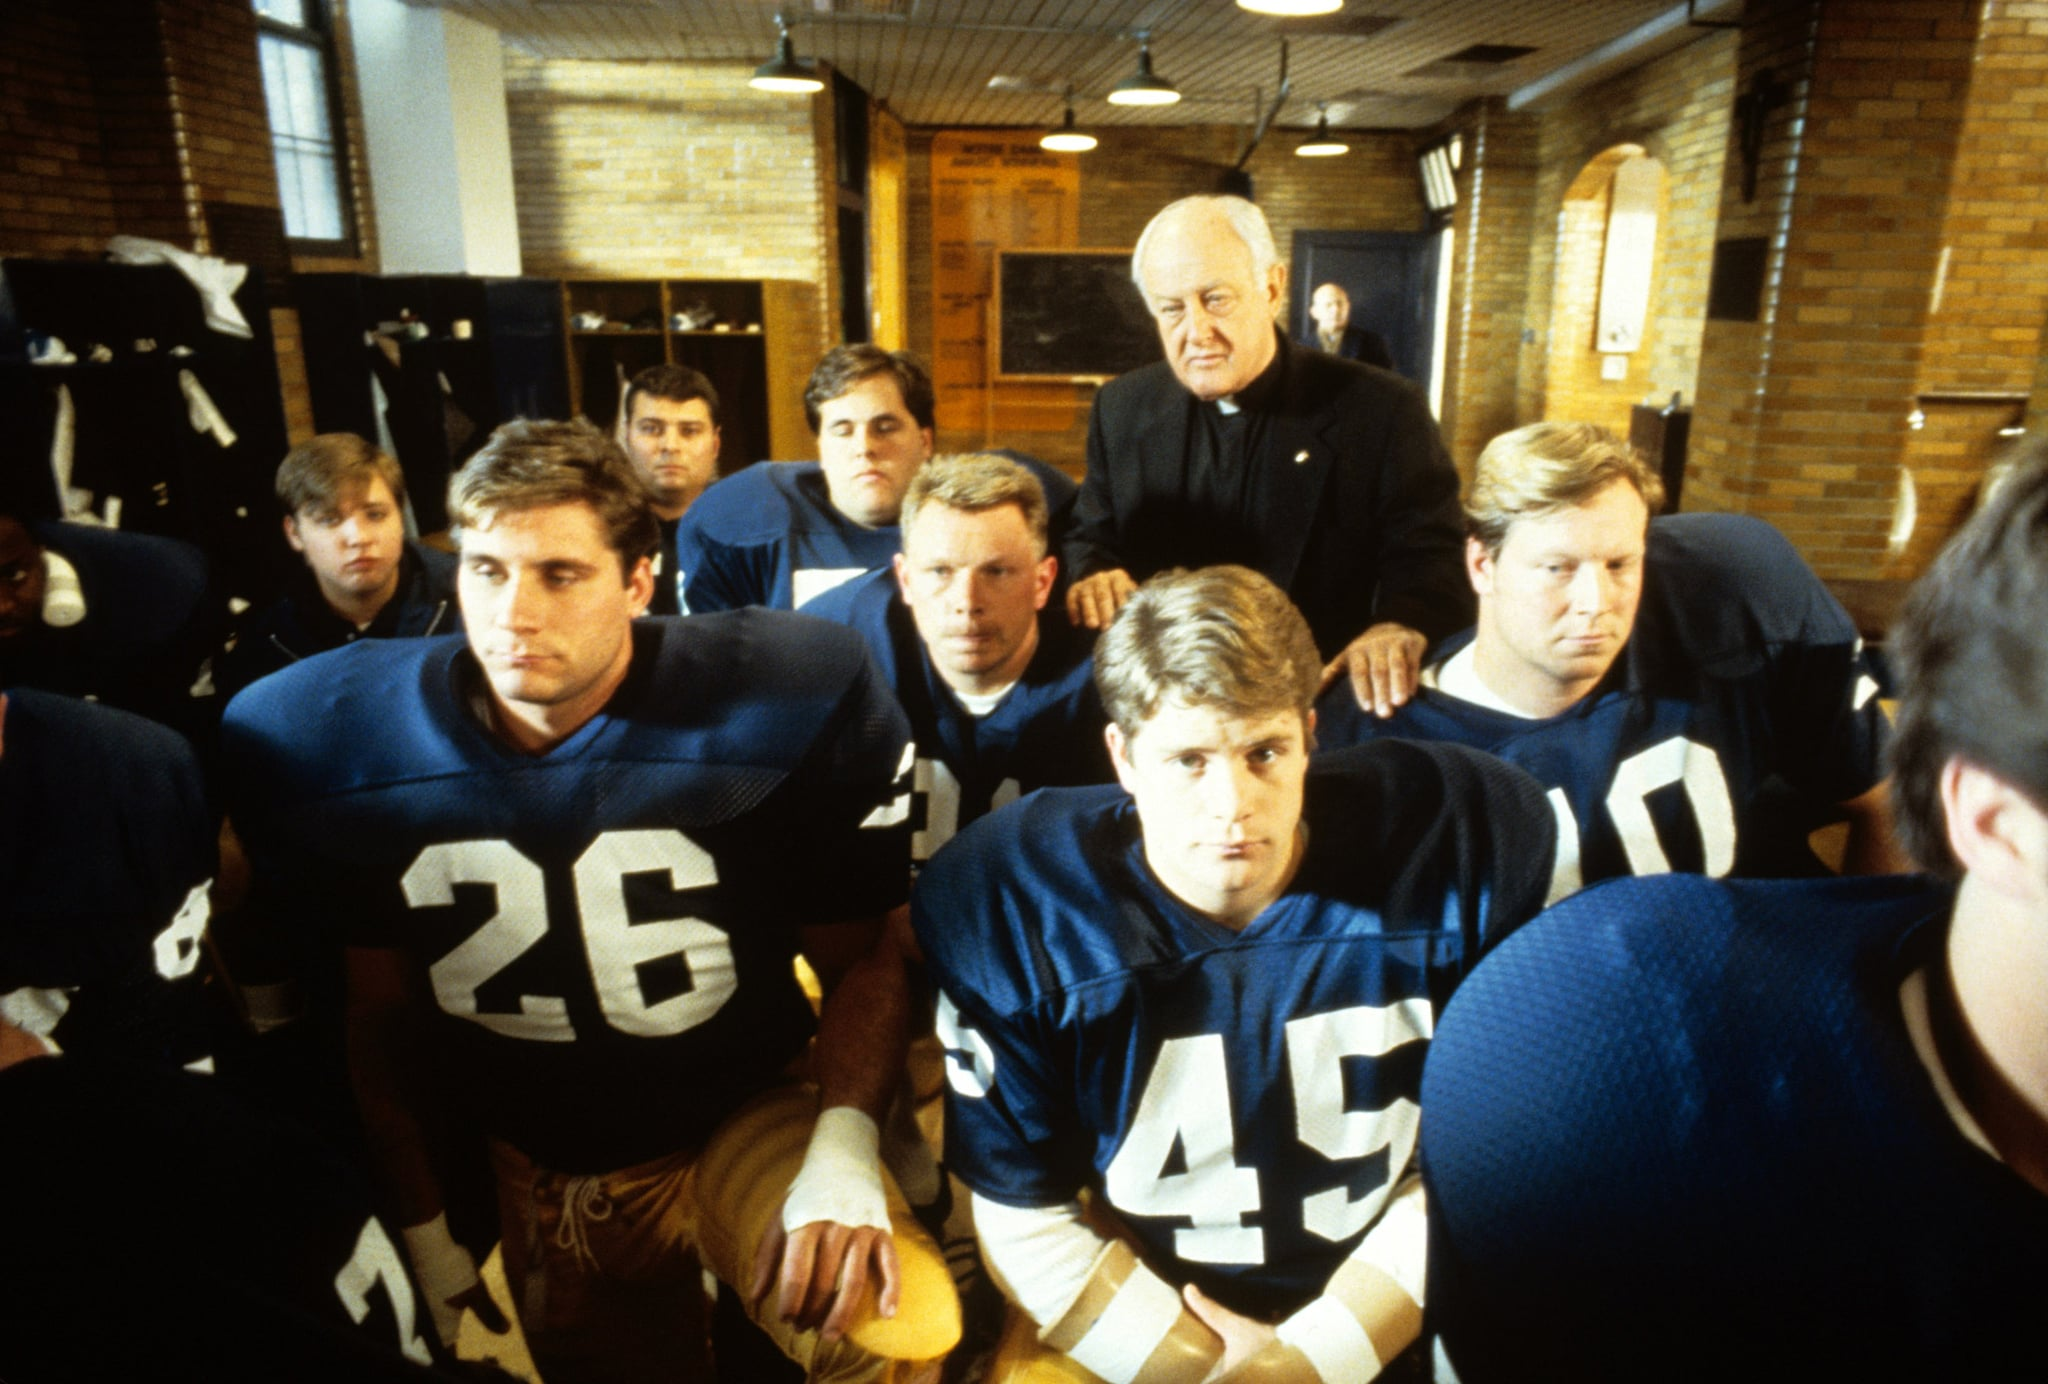 RUDY, Sean Astin (centre right), Father James Riehle (back), 1993, TriStar Pictures/courtesy Everett Collection